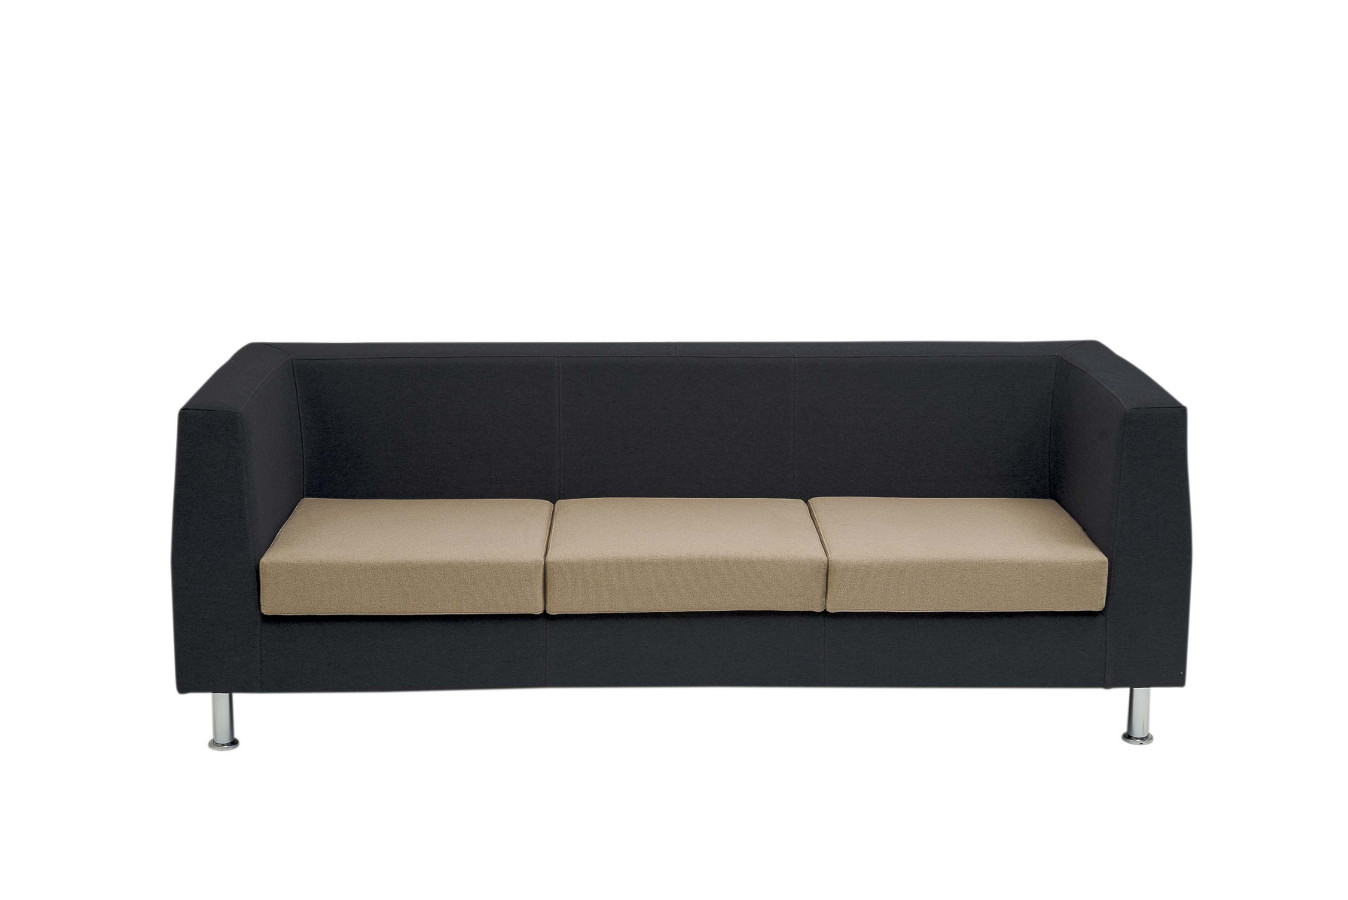 Sessel Couch Moon Sofa Und Sessel Madeinitaly De